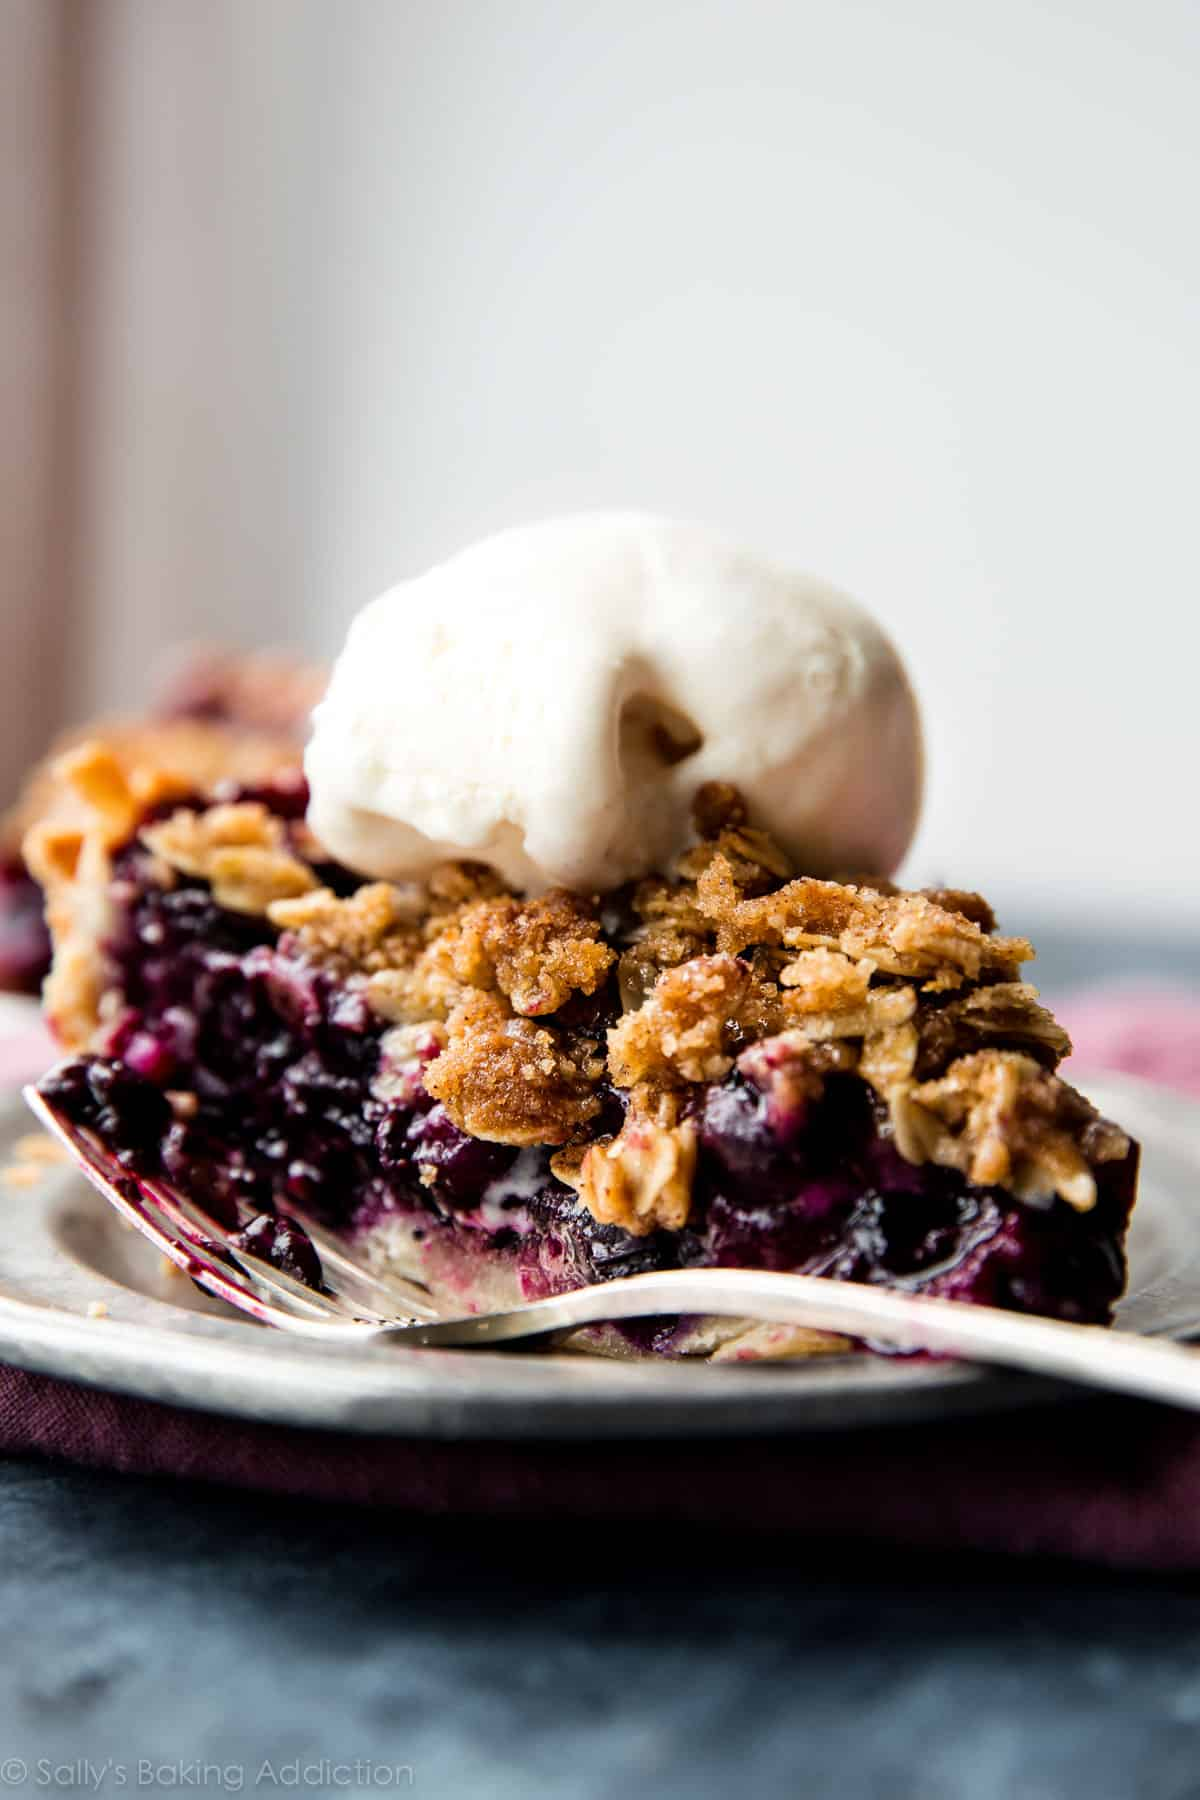 Use up summer's fresh blueberries in this buttery, juicy, and completely delicious blueberry crumble pie. Topped with brown sugar buttery cinnamon oat crumble! Recipe on sallysbakingaddiction.com